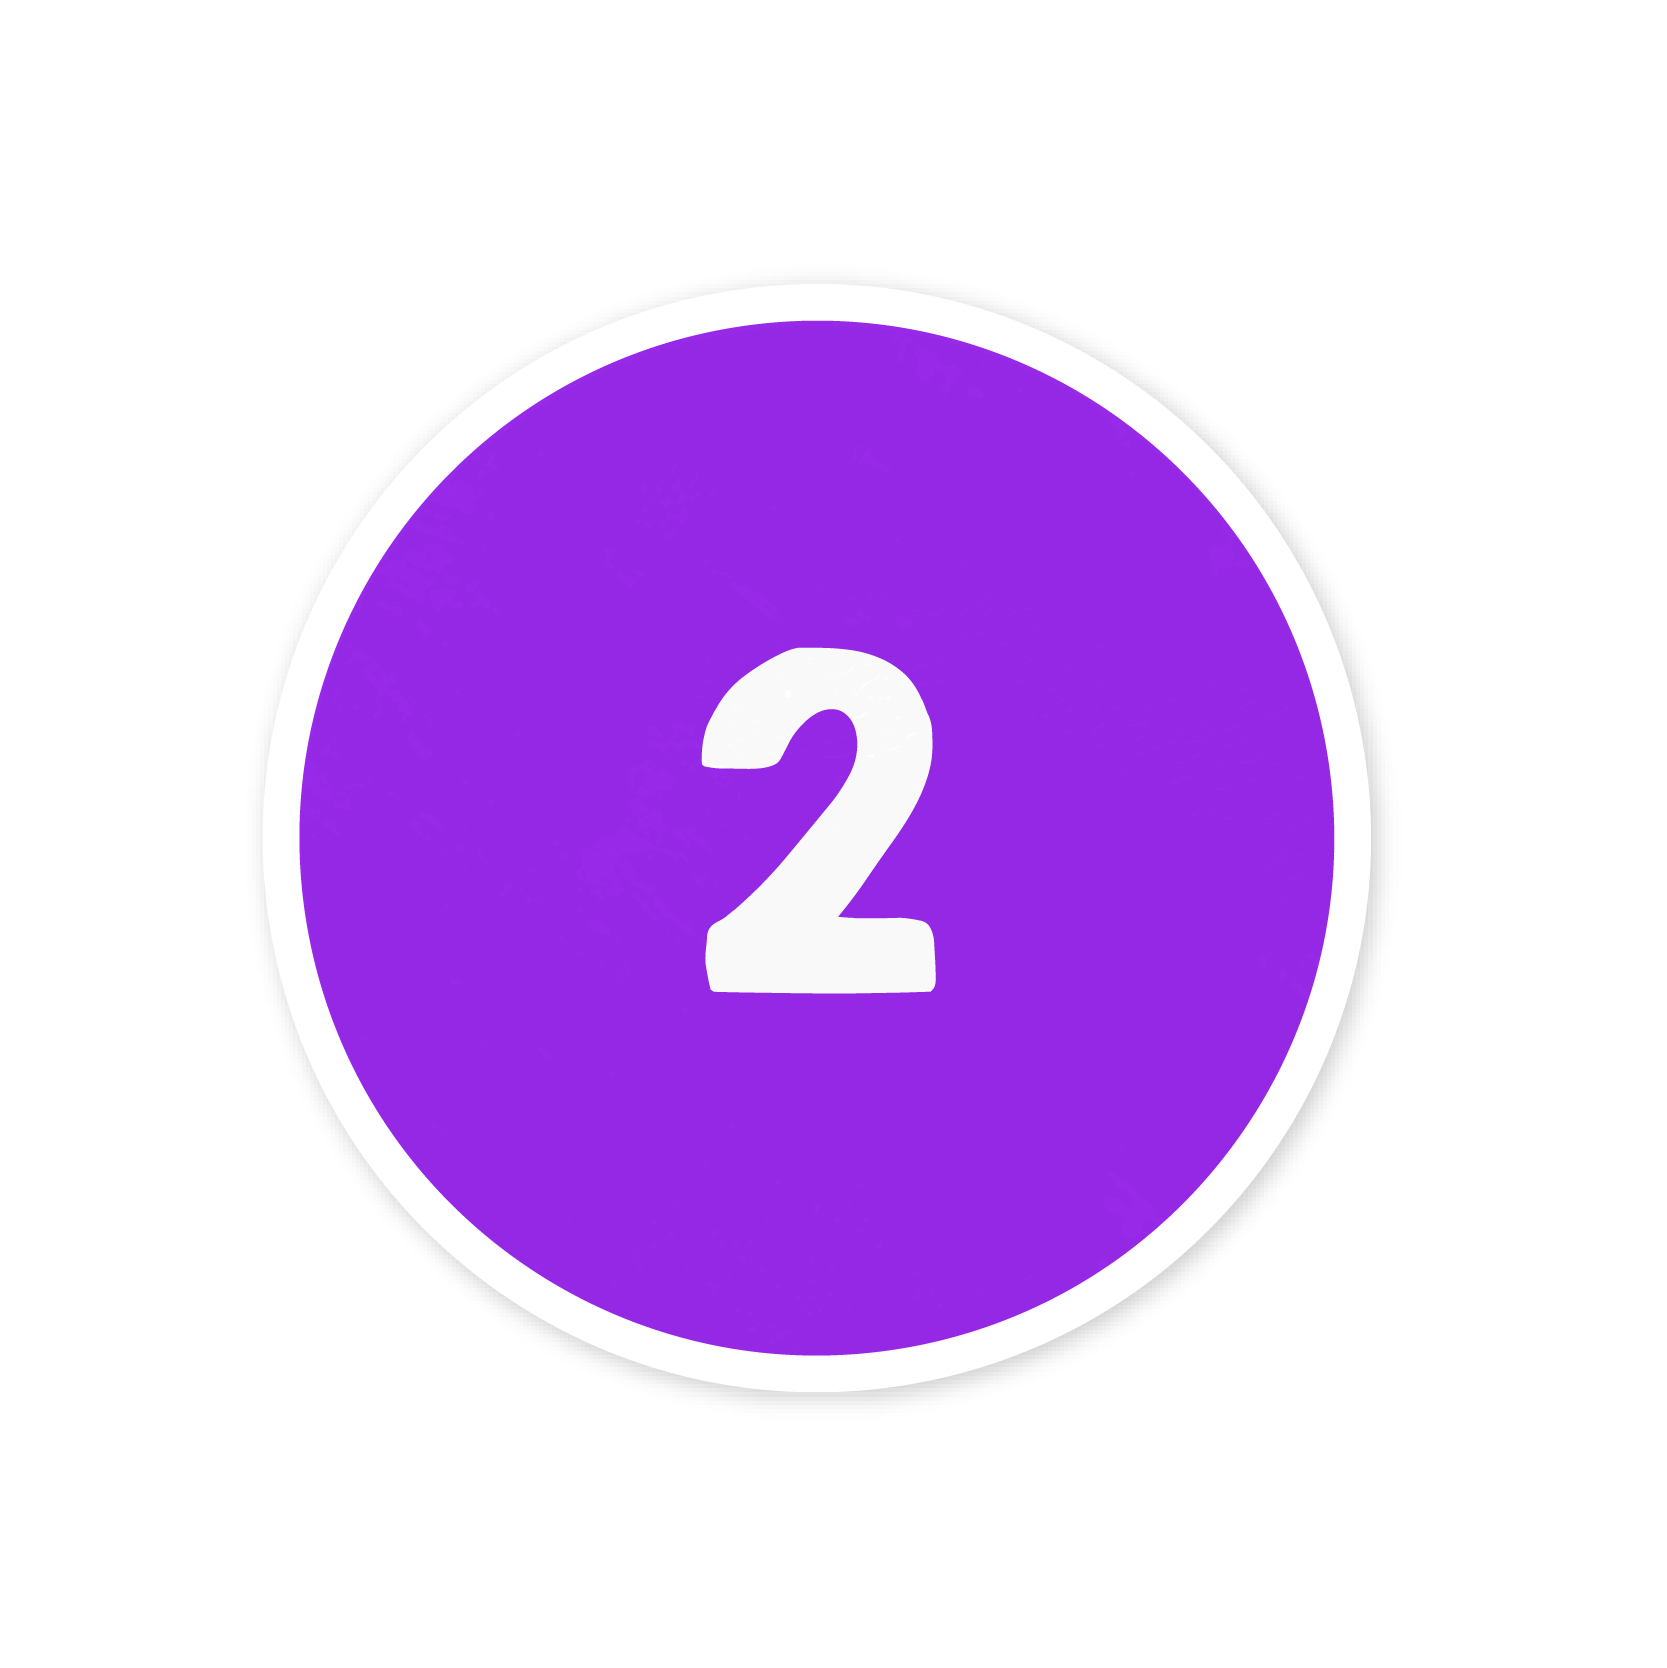 A violet number two sticker